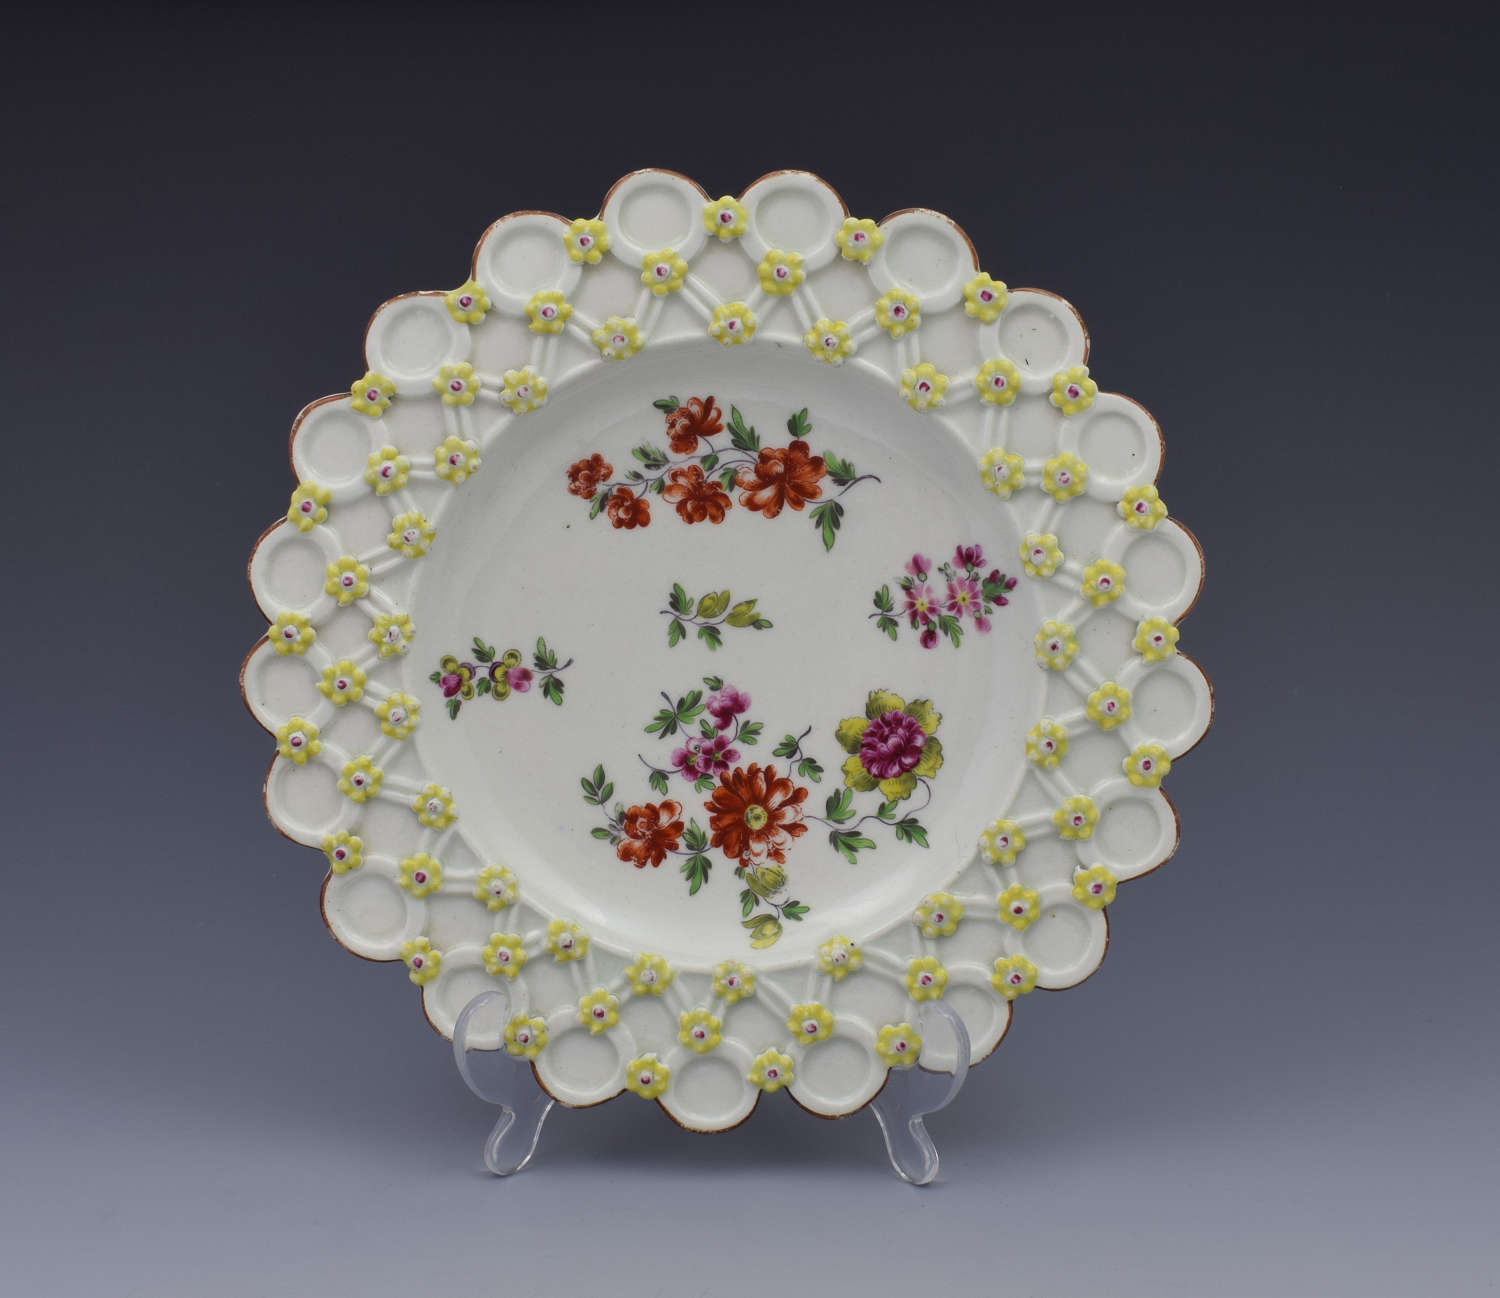 18th Century Derby Porcelain Spectacle Plate C.1760